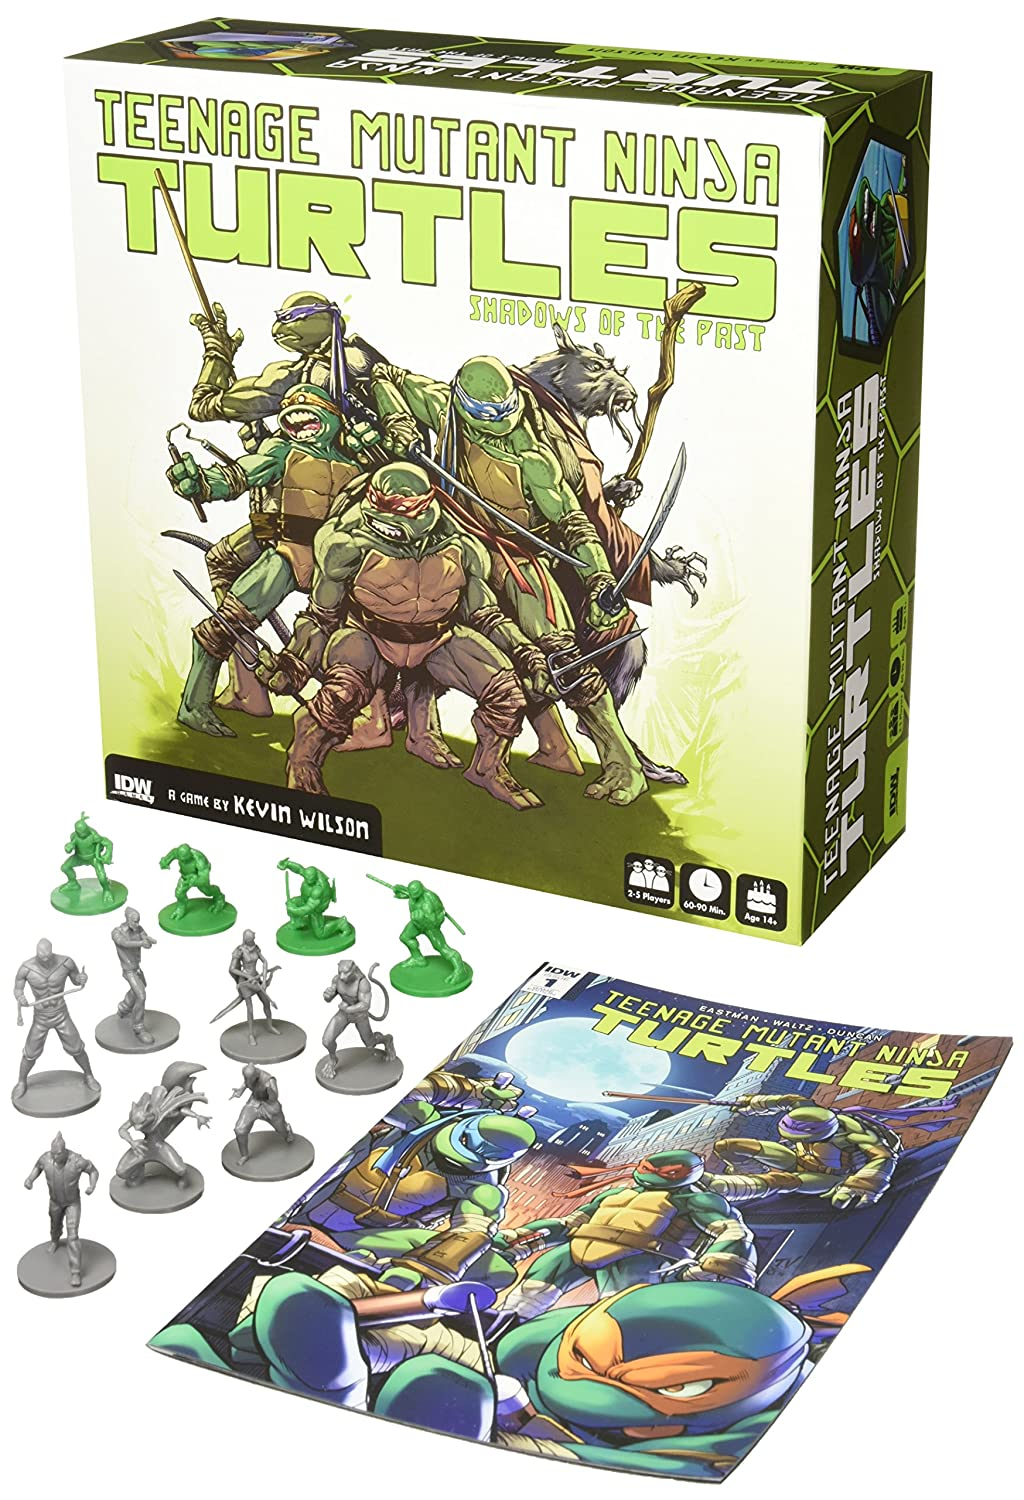 66de149df Amazon.com  IDW Games Teenage Mutant Ninja Turtles  Shadows of The Past  Board Game  Toys   Games